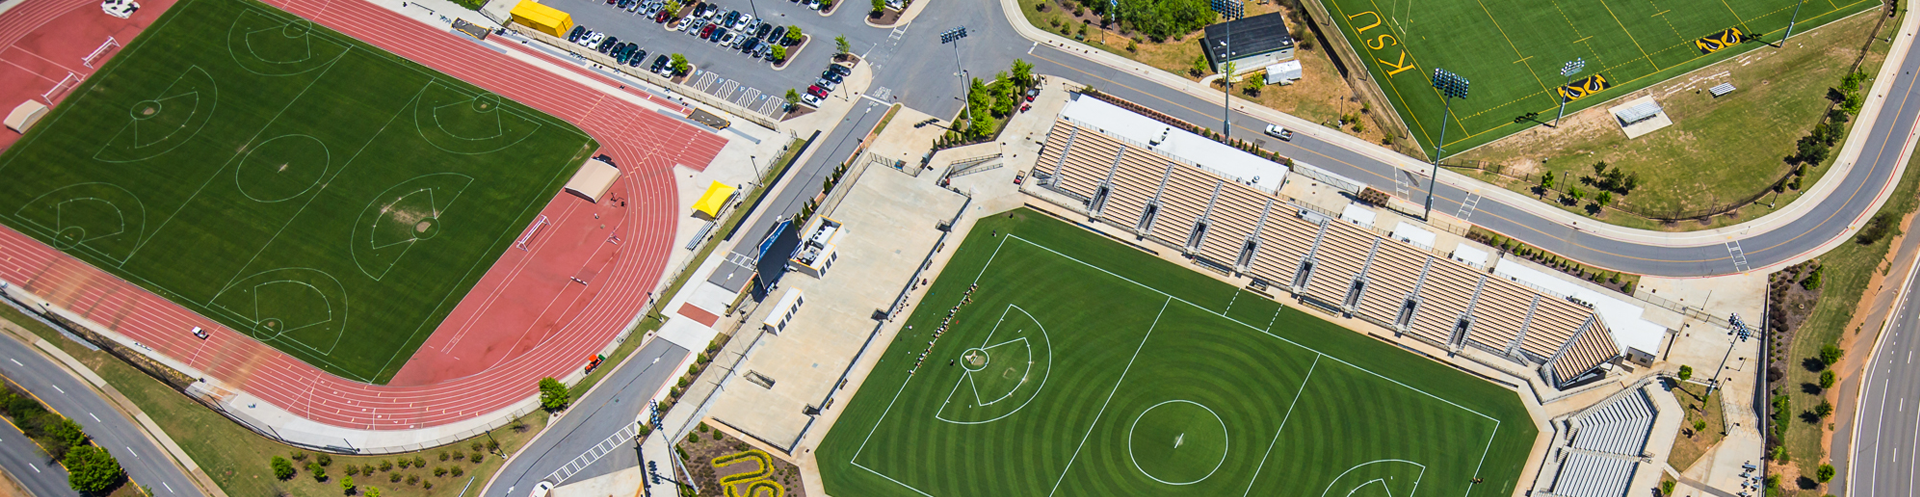 Kennesaw State Admissions >> KSU Sports and Entertainment Park | Kennesaw State University